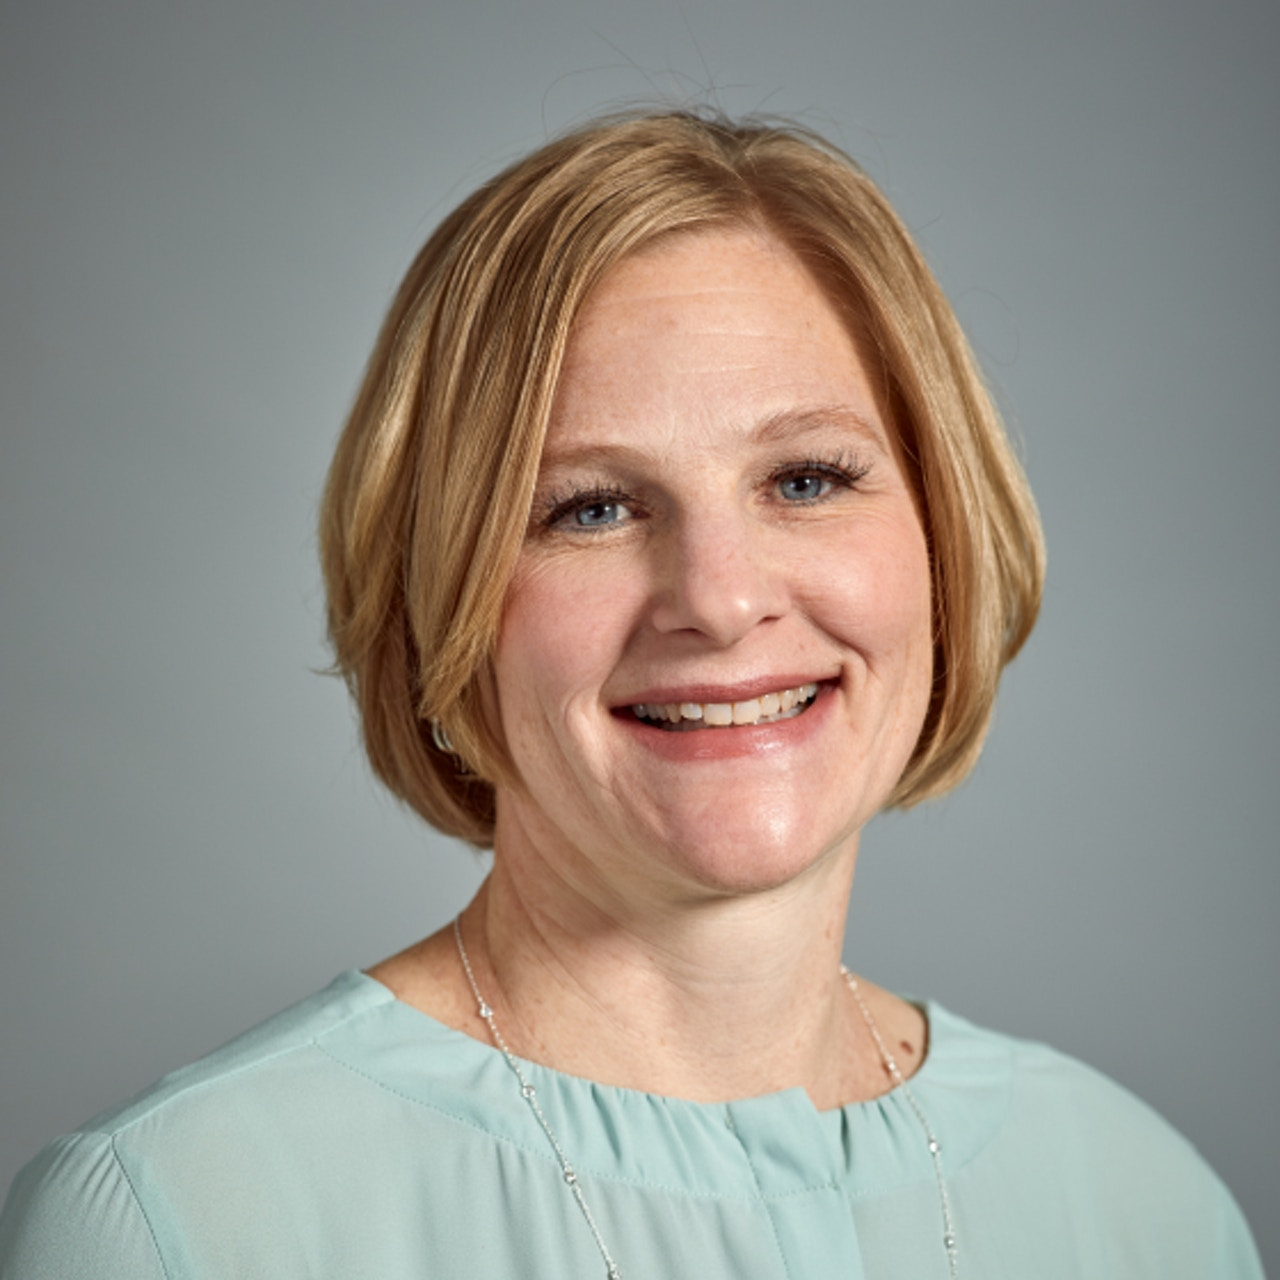 Janelle Weyers - Chief Information Officer of MW Industries, Inc.